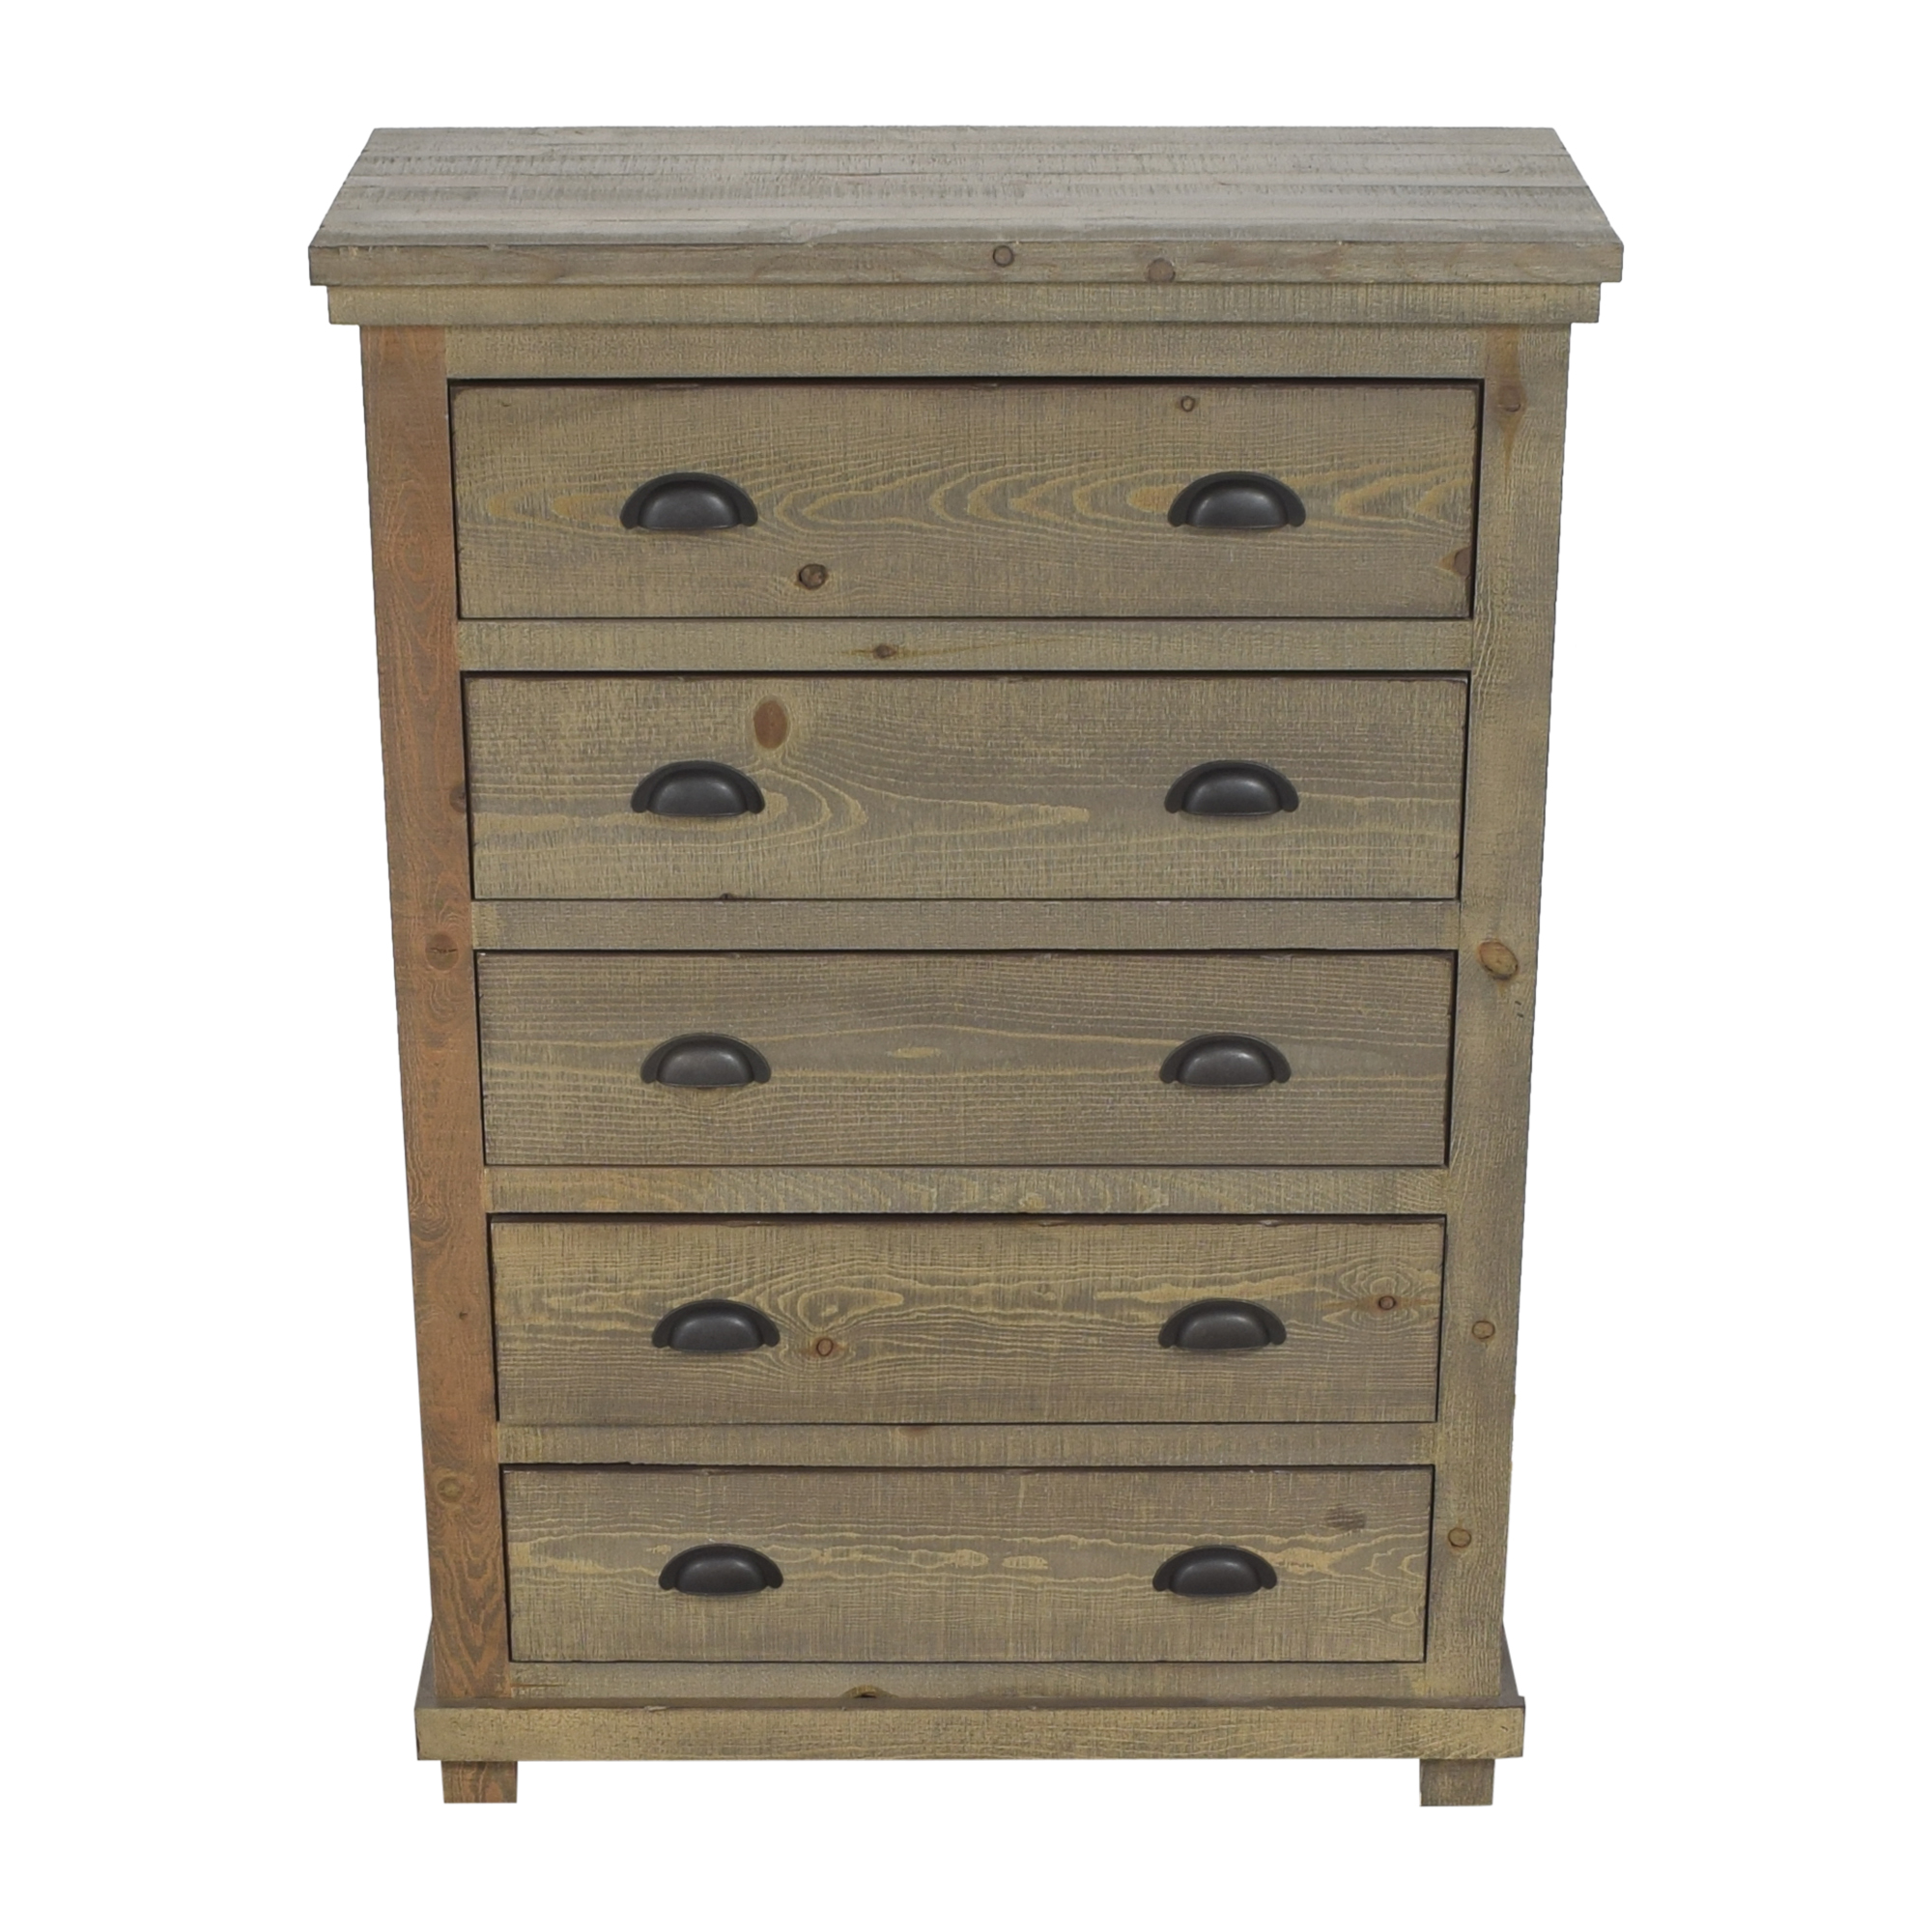 Progressive Furniture Progressive Furniture Willow Five Drawer Chest dimensions